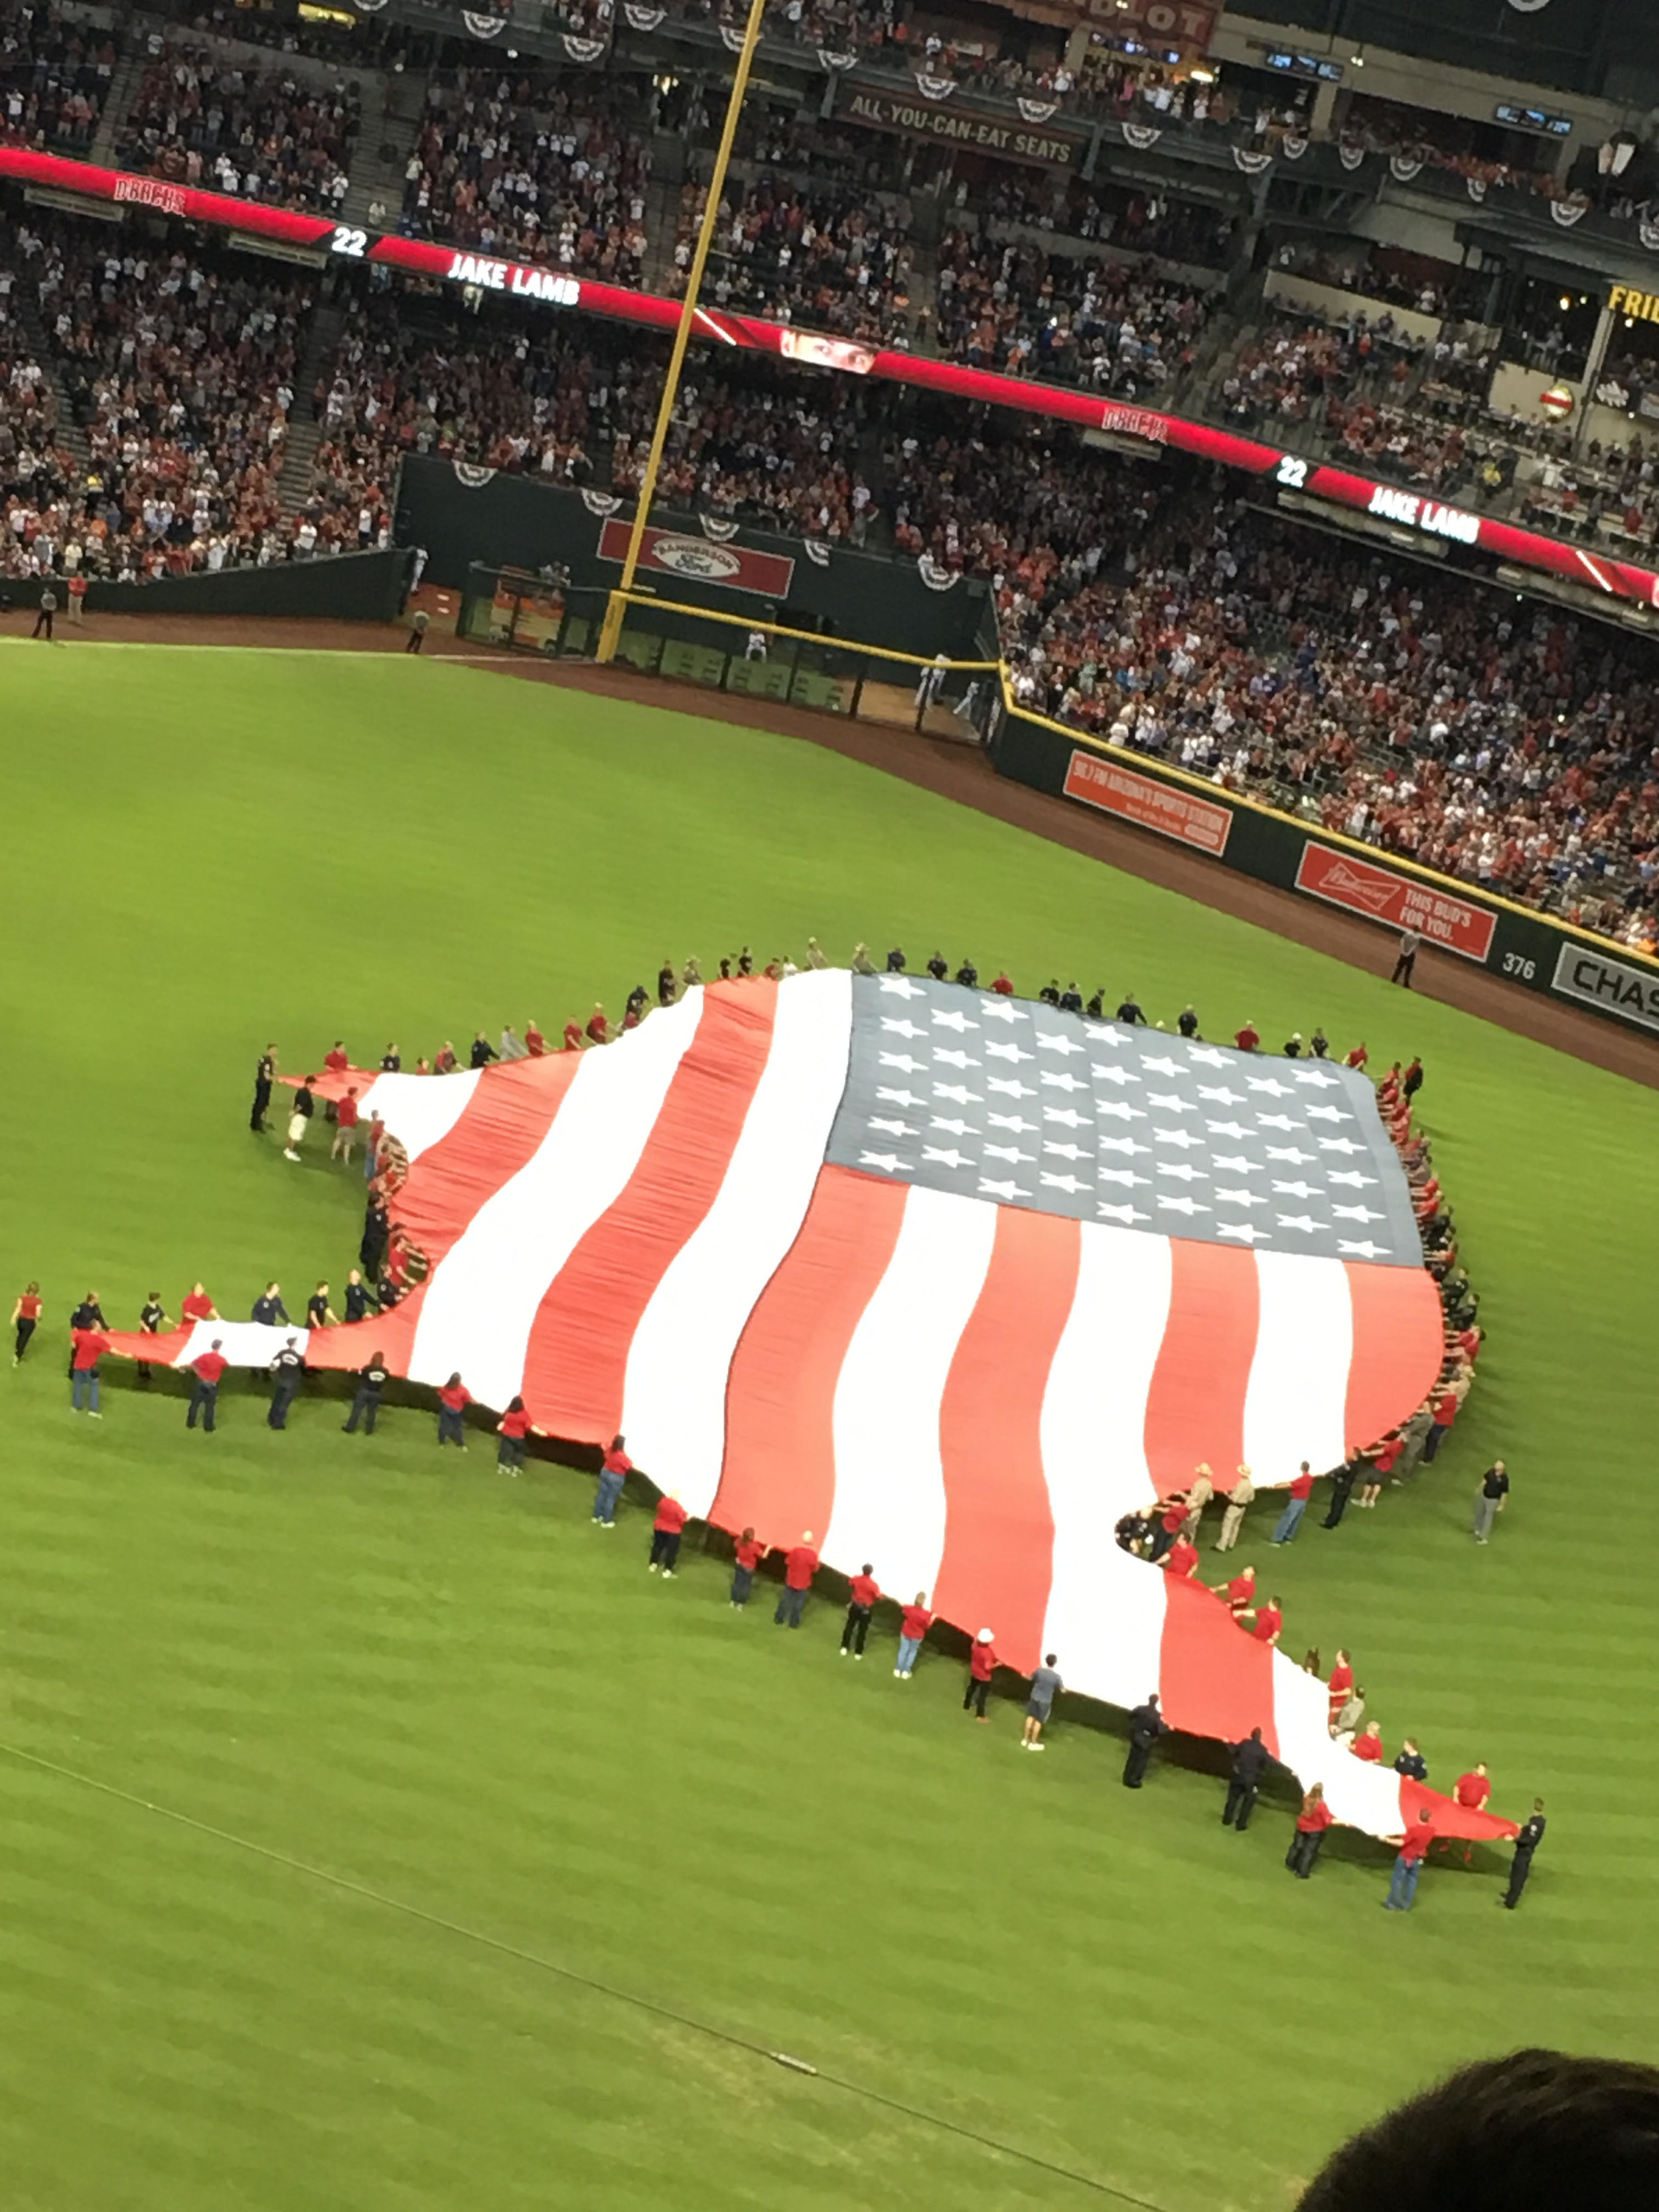 It was only fitting to have a beautiful American flag in the shape of our country for the national anthem just before the greatest Olympic athlete threw out the first pitch!